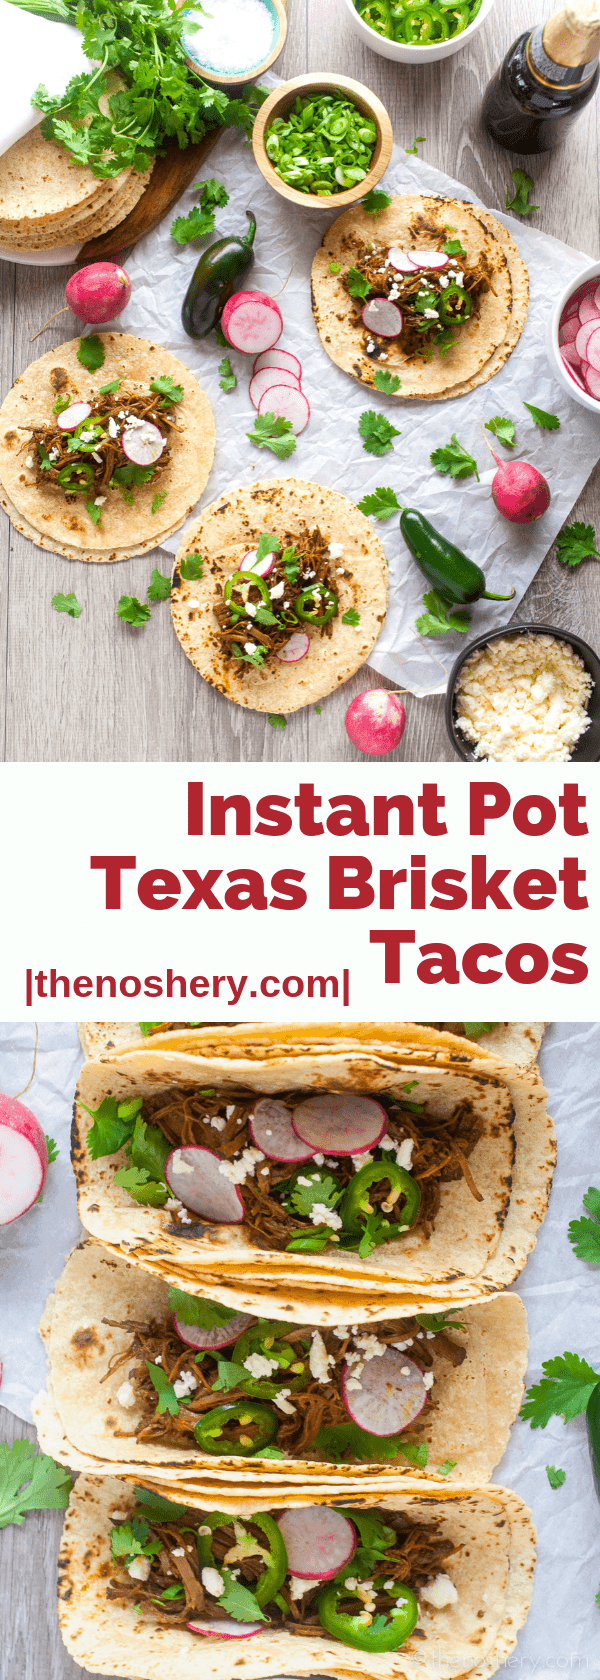 Instant Pot Texas Brisket | The brisket can be enjoyed on its own with some sides, in tacos, or even topped on some scrambled eggs. | The Noshery